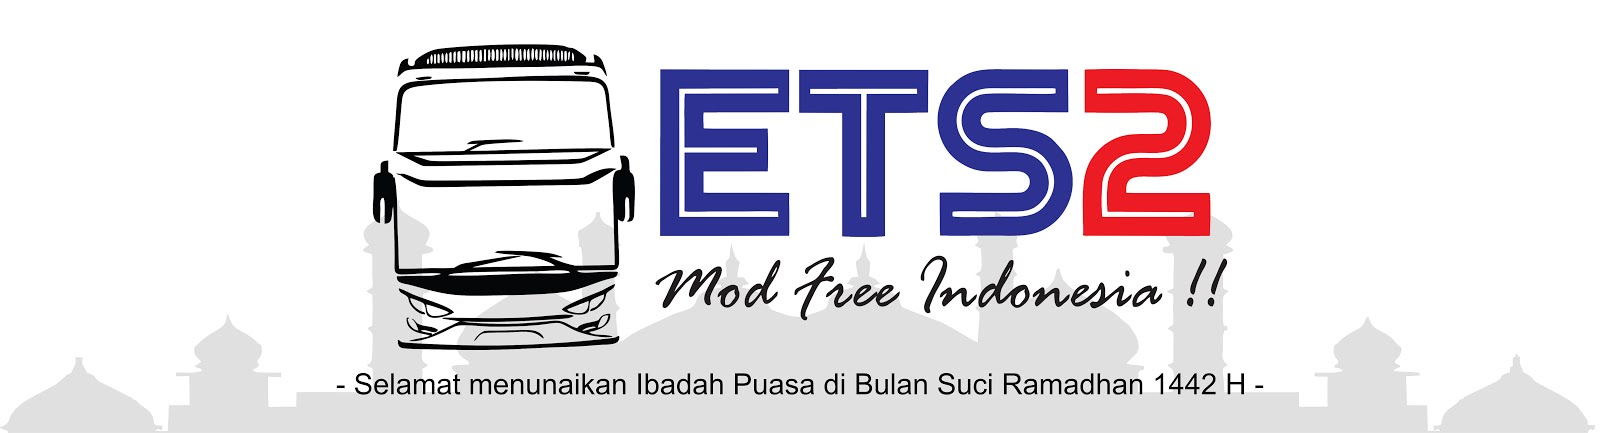 Mod ETS2 Indonesia